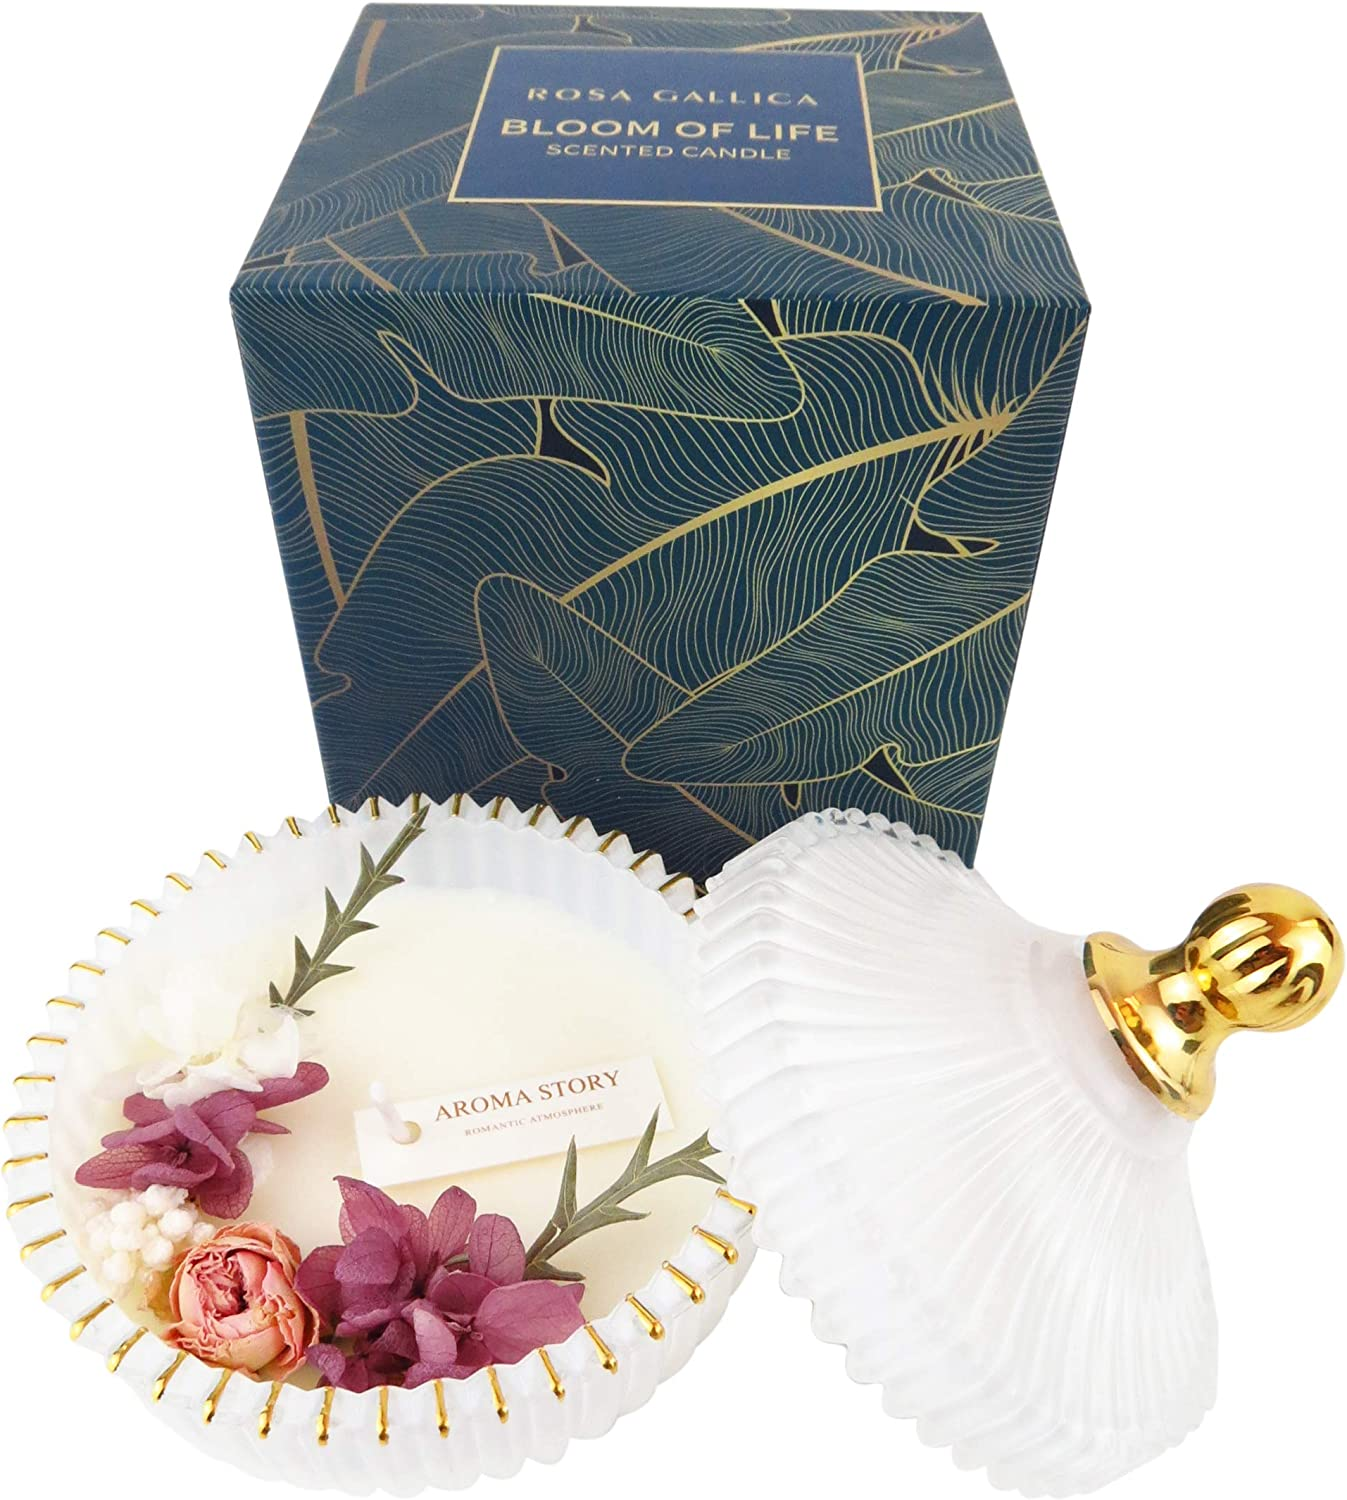 ROSA GALLICA Scented Candle,Aromatherapy Candle Set for Home, A Nice House Decor or Just as Candle Gift for Women. for Mother's Day, Anniversary, Thank You Gift or House Warming Present. (Sunny Rose)